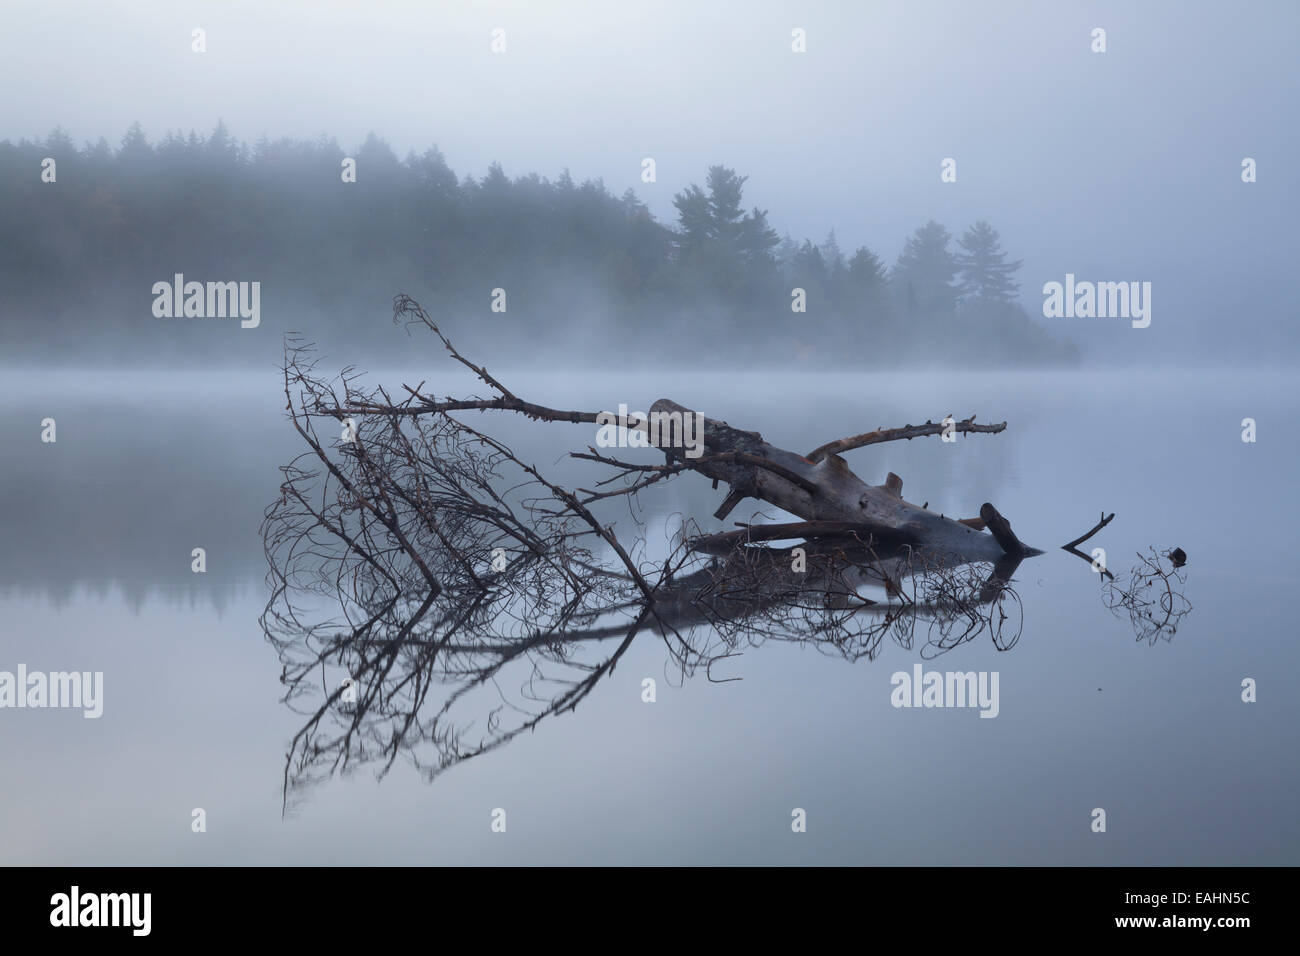 A dead tree in the water at sunrise. Algonquin Provincial Park, Ontario, Canada. - Stock Image